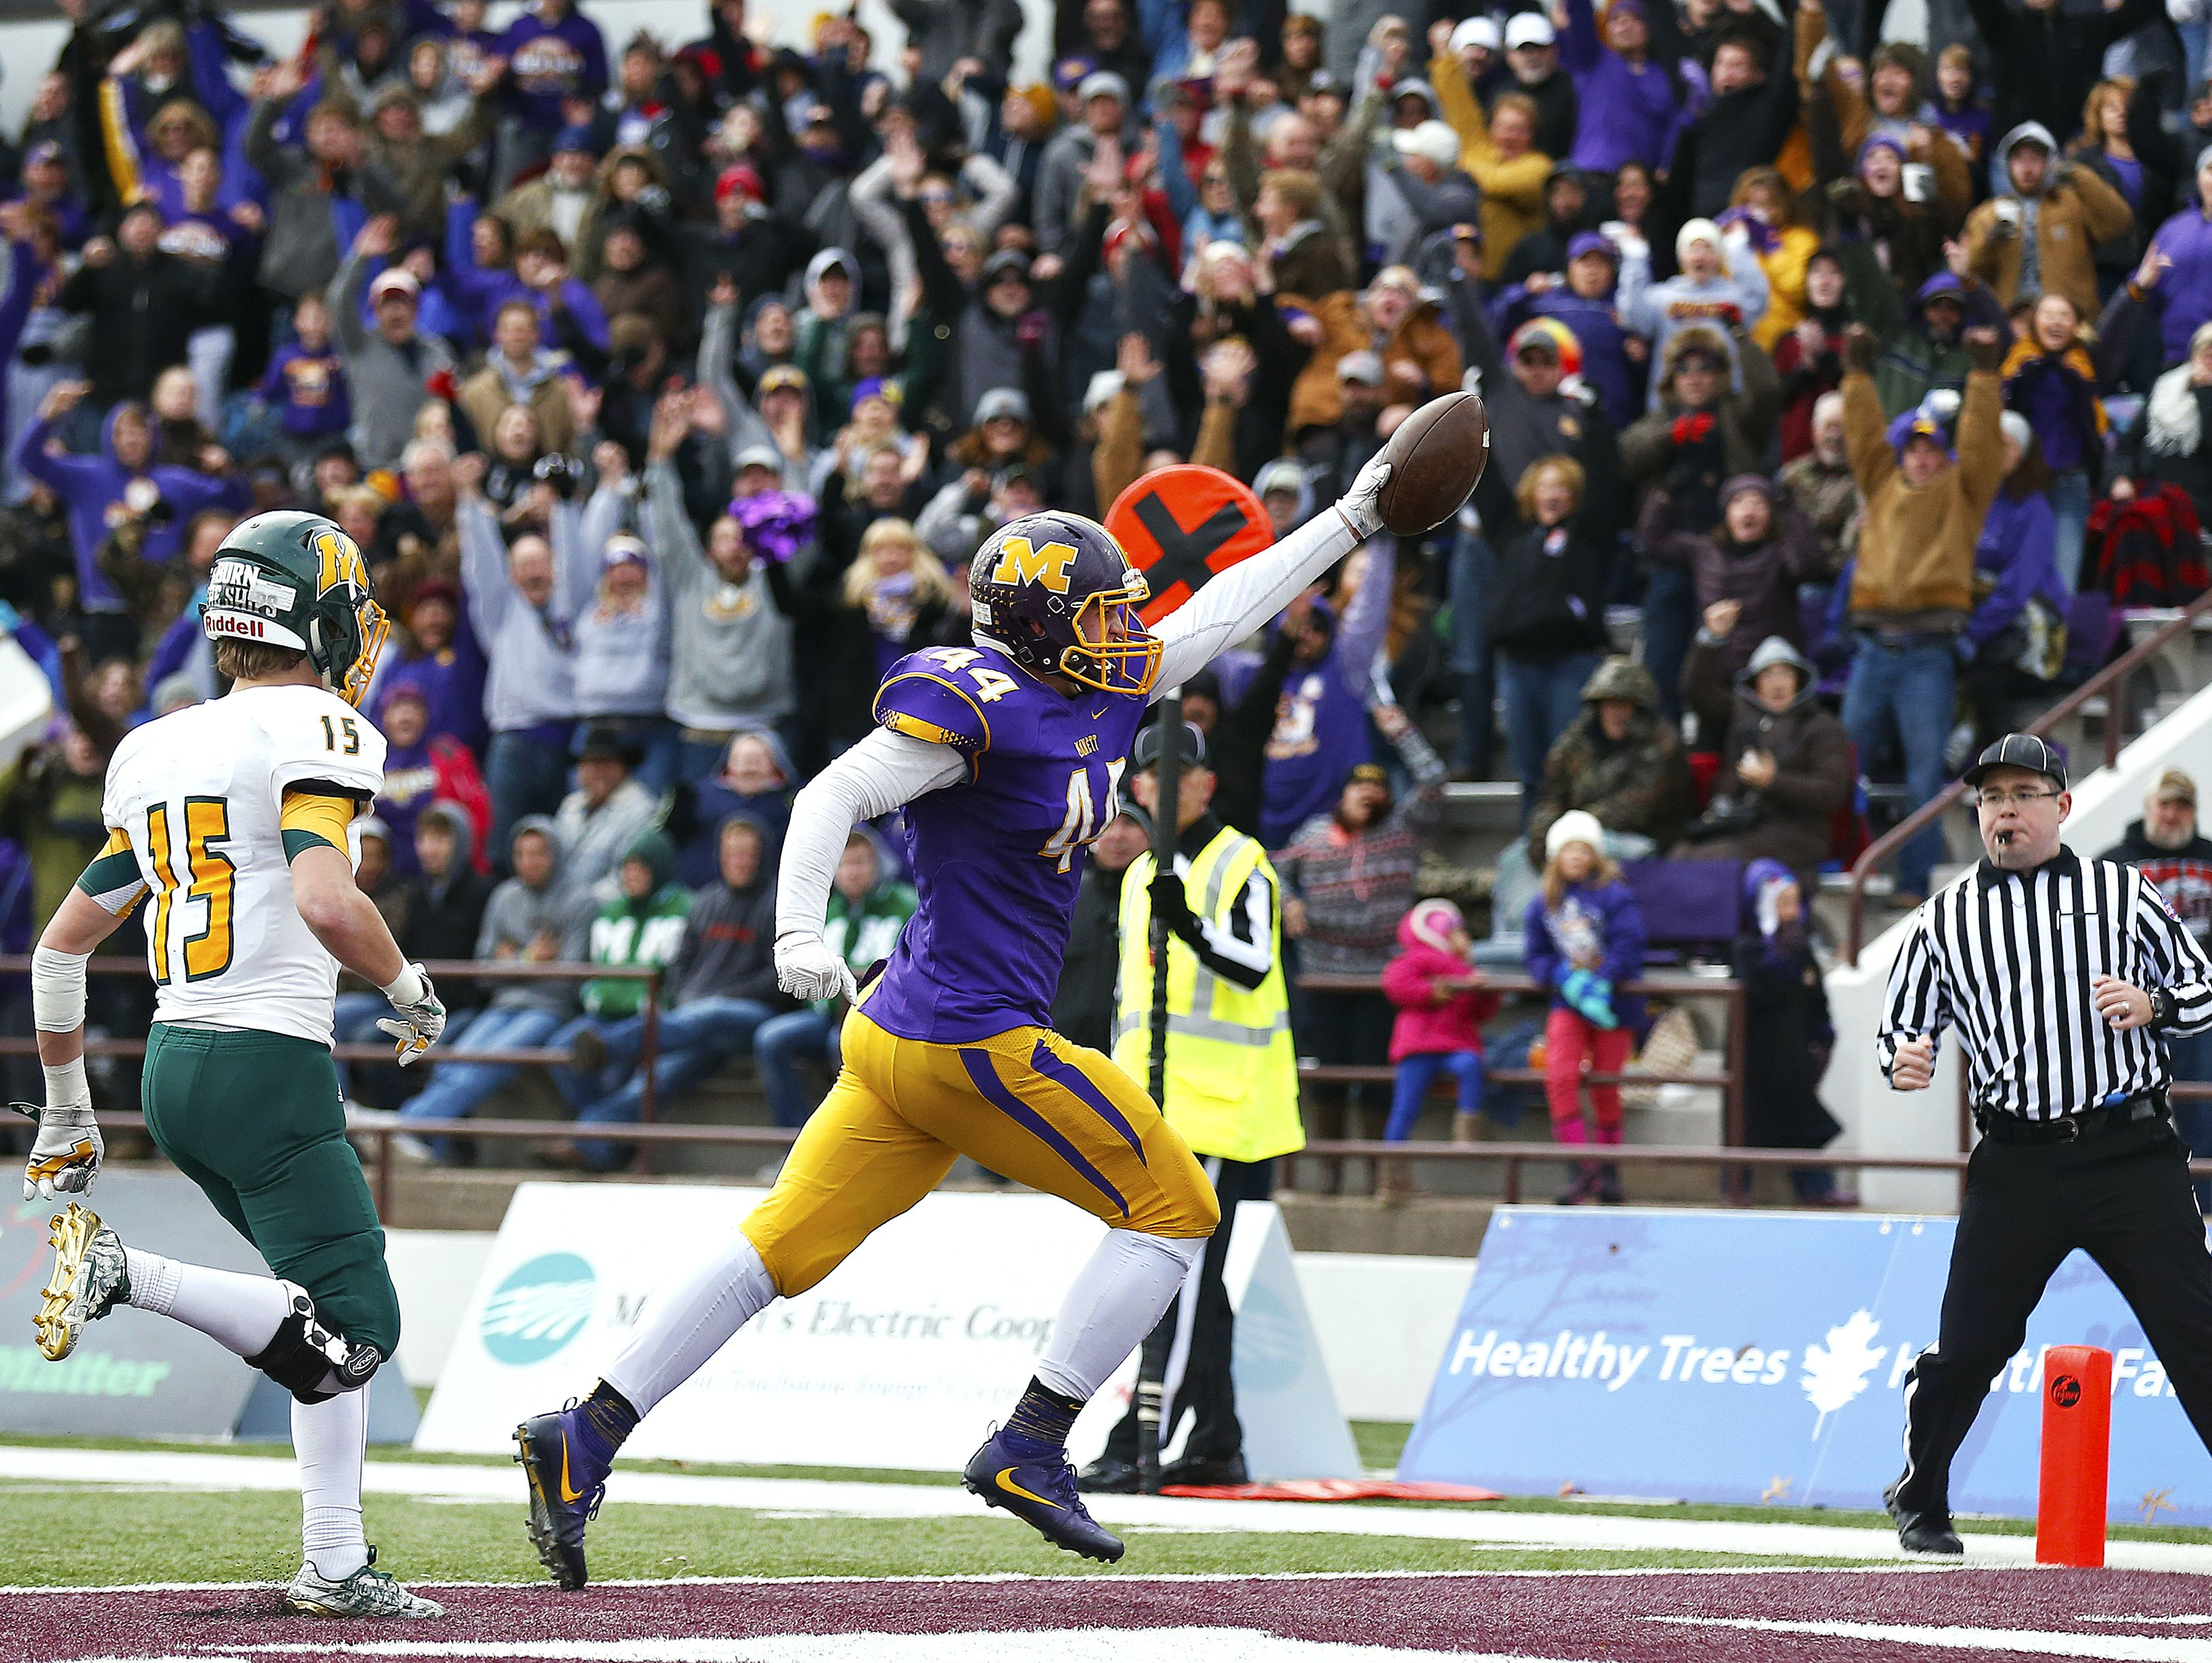 ]Monett High School tight end David Turner (44) celebrates after scoring a receiving touchdown during fourth quarter action of the MSHSAA Class 3 State Championship Game between the Monett High School Cubs and the Maryville High School Spoofhounds at Robert W. Plaster Stadium in Springfield, Mo. on Nov. 26, 2016. The Monett Cubs won the game 27-18.